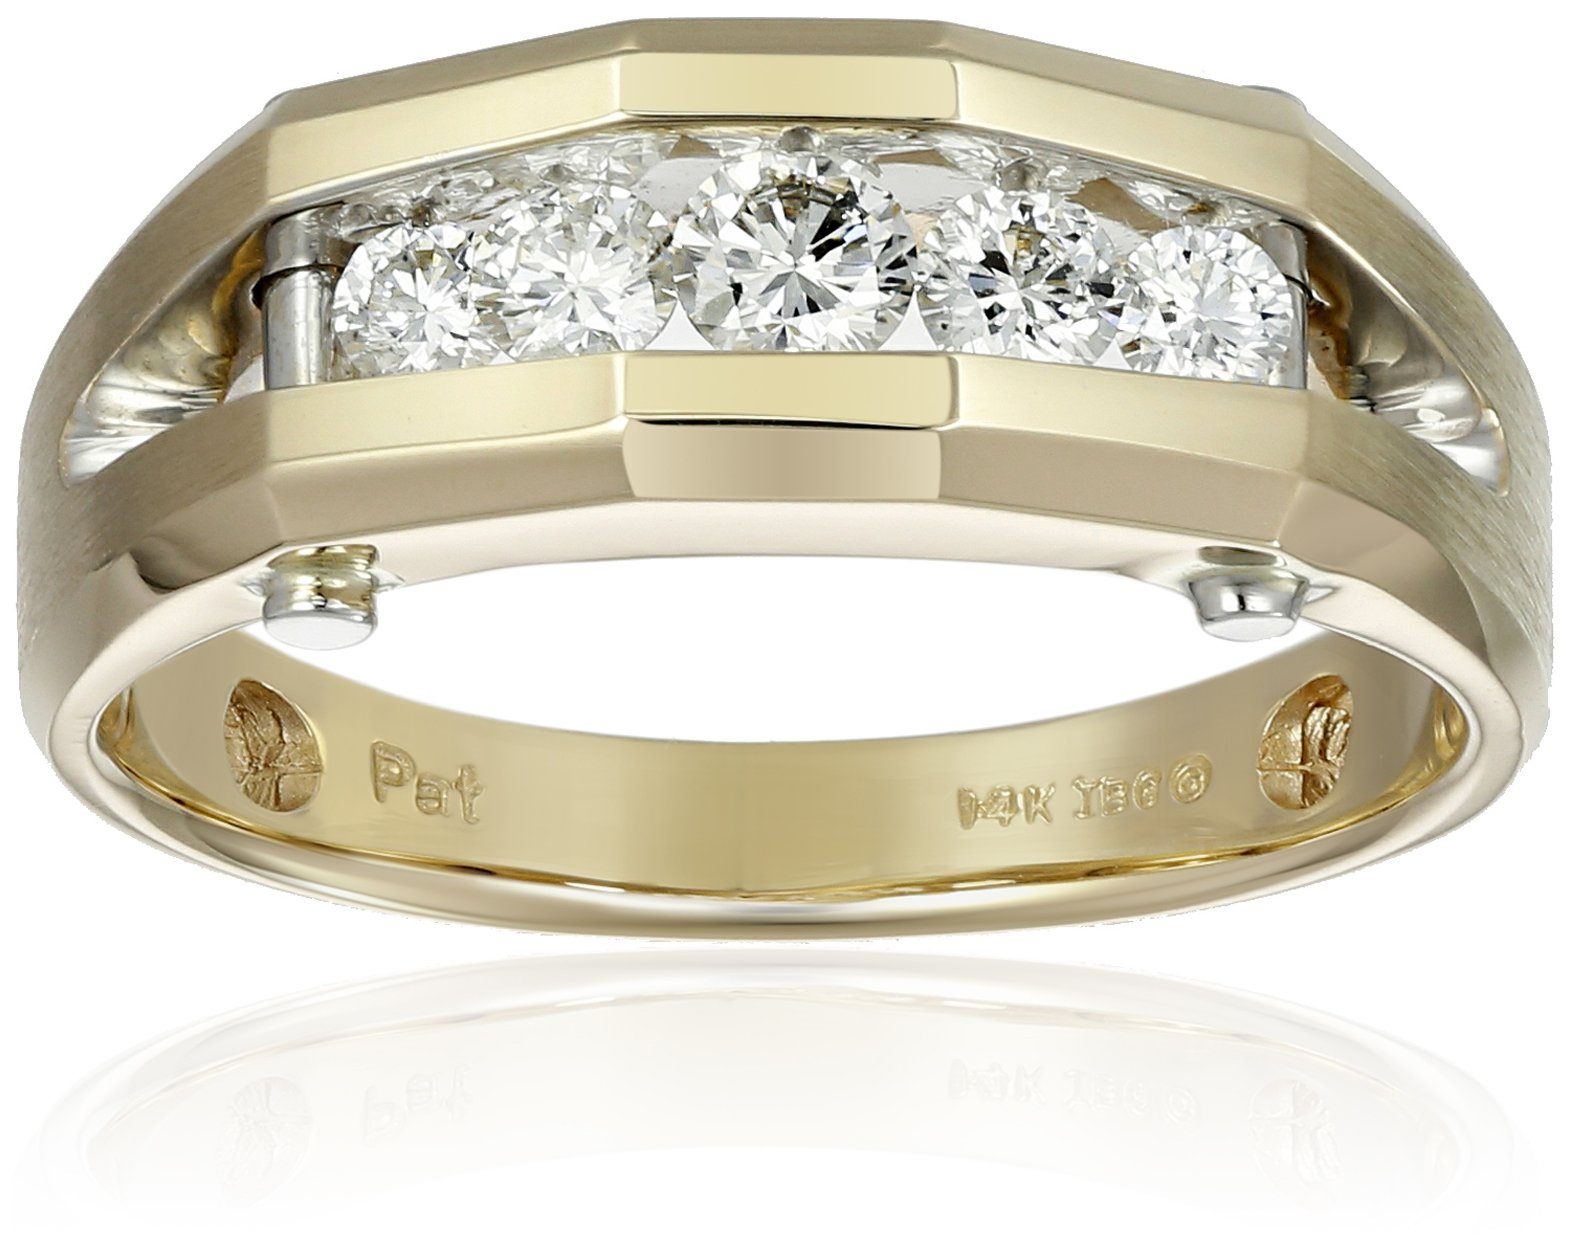 Men's 14k Yellow and White Gold Polished Finish Split Shank Diamond Ring (1/2 cttw, H-I Color, I1-I2 Clarity), Size 10